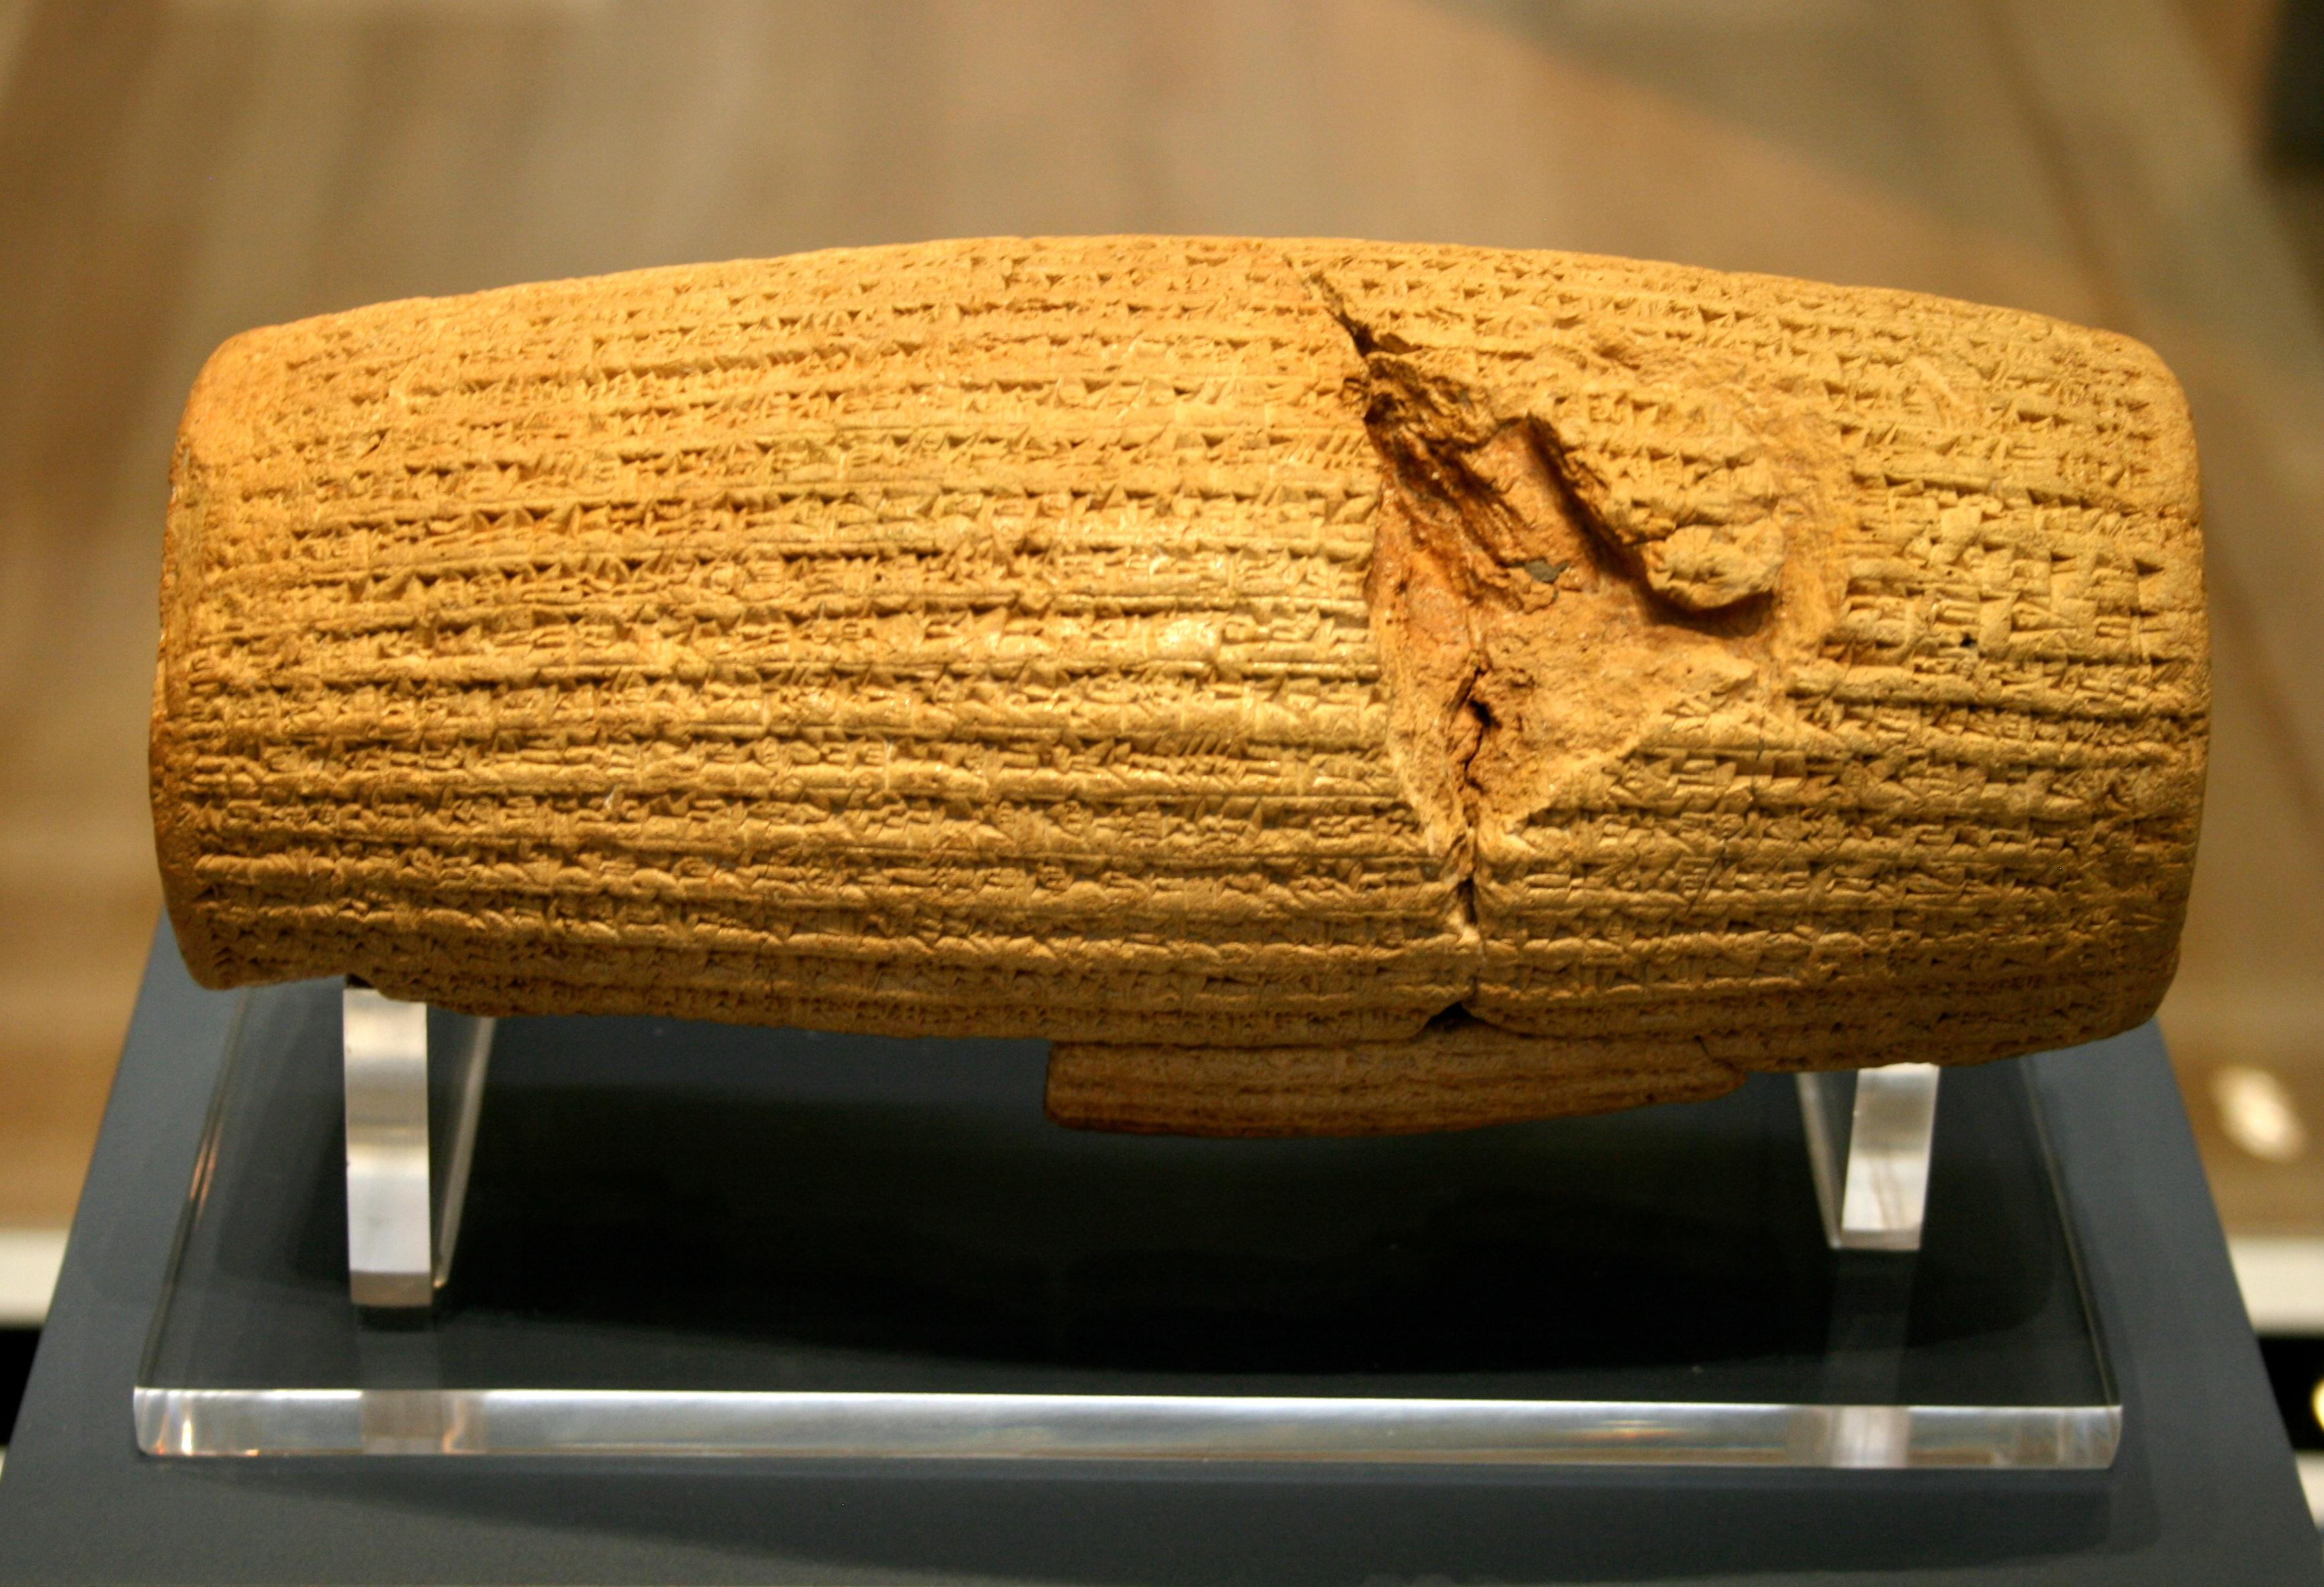 Cylinder during biblical times used to stamp documents